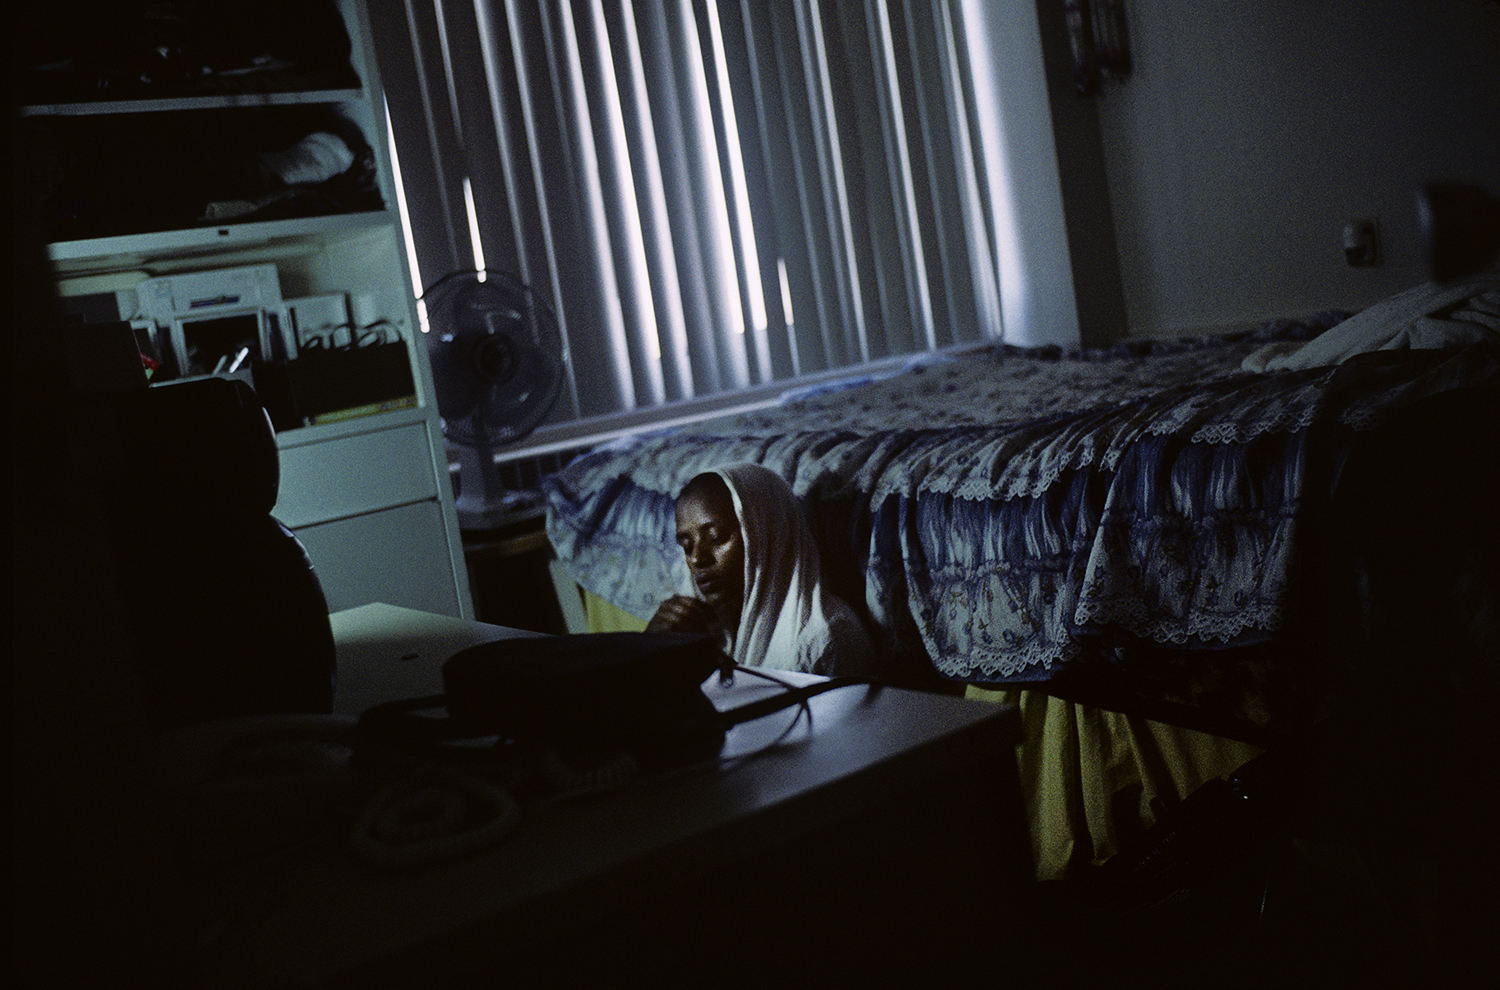 Exhibition. Gabriele Stabile,  Refugee Hotel.  Bronx Documentary Center, Bronx, New York. On view until December 1, 2013. Pictured: Fatuma Obisu Ka-kawa listens to an english course on the stereo in her father's room, in Minneapolis, MN, 2007.